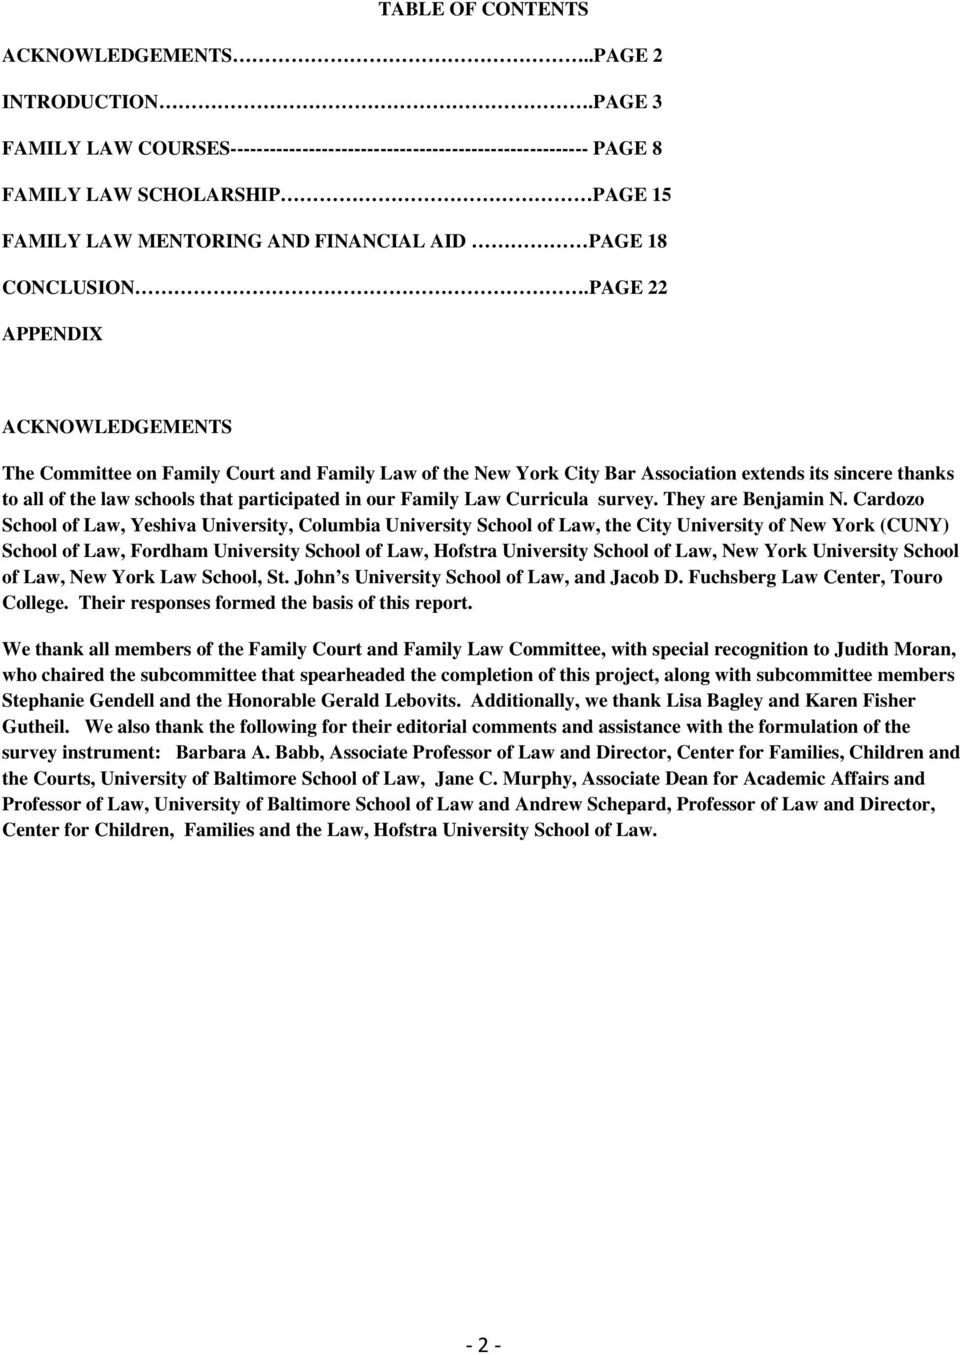 PAGE 22 APPENDIX ACKNOWLEDGEMENTS The Committee on Family Court and Family Law of the New York City Bar Association extends its sincere thanks to all of the law schools that participated in our